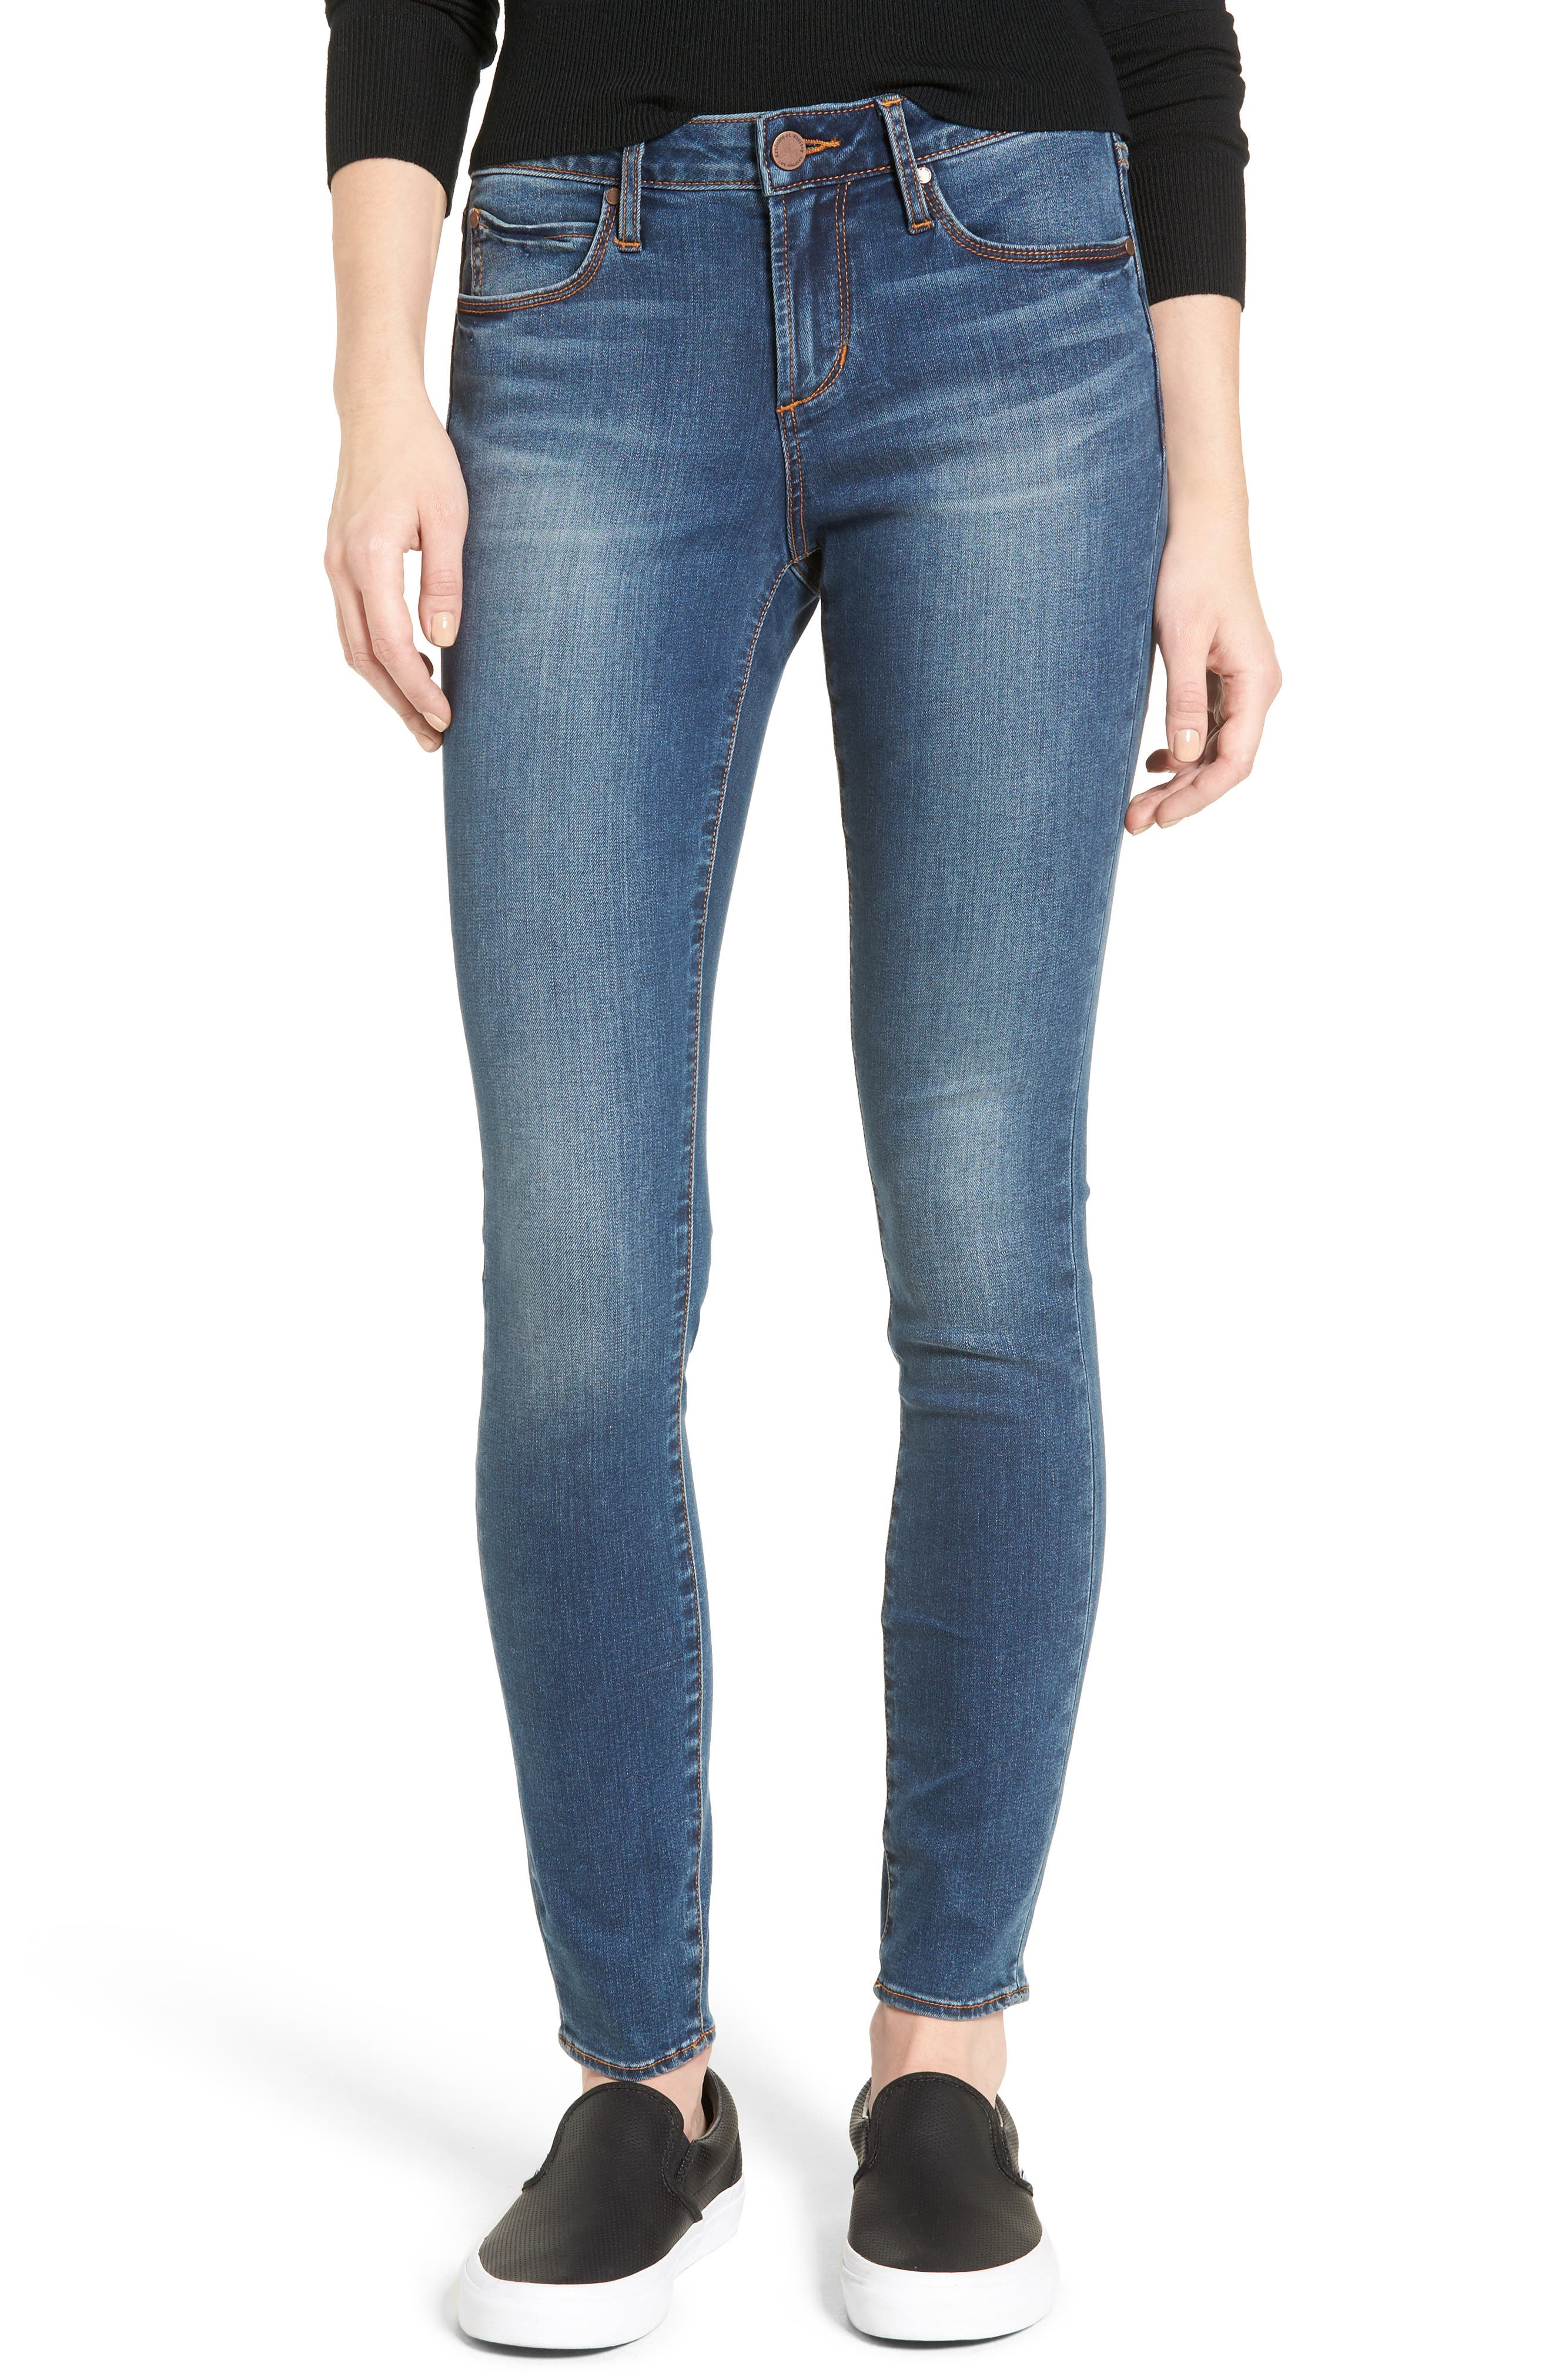 Articles of Society Sarah Skinny Jeans (Bancroft)